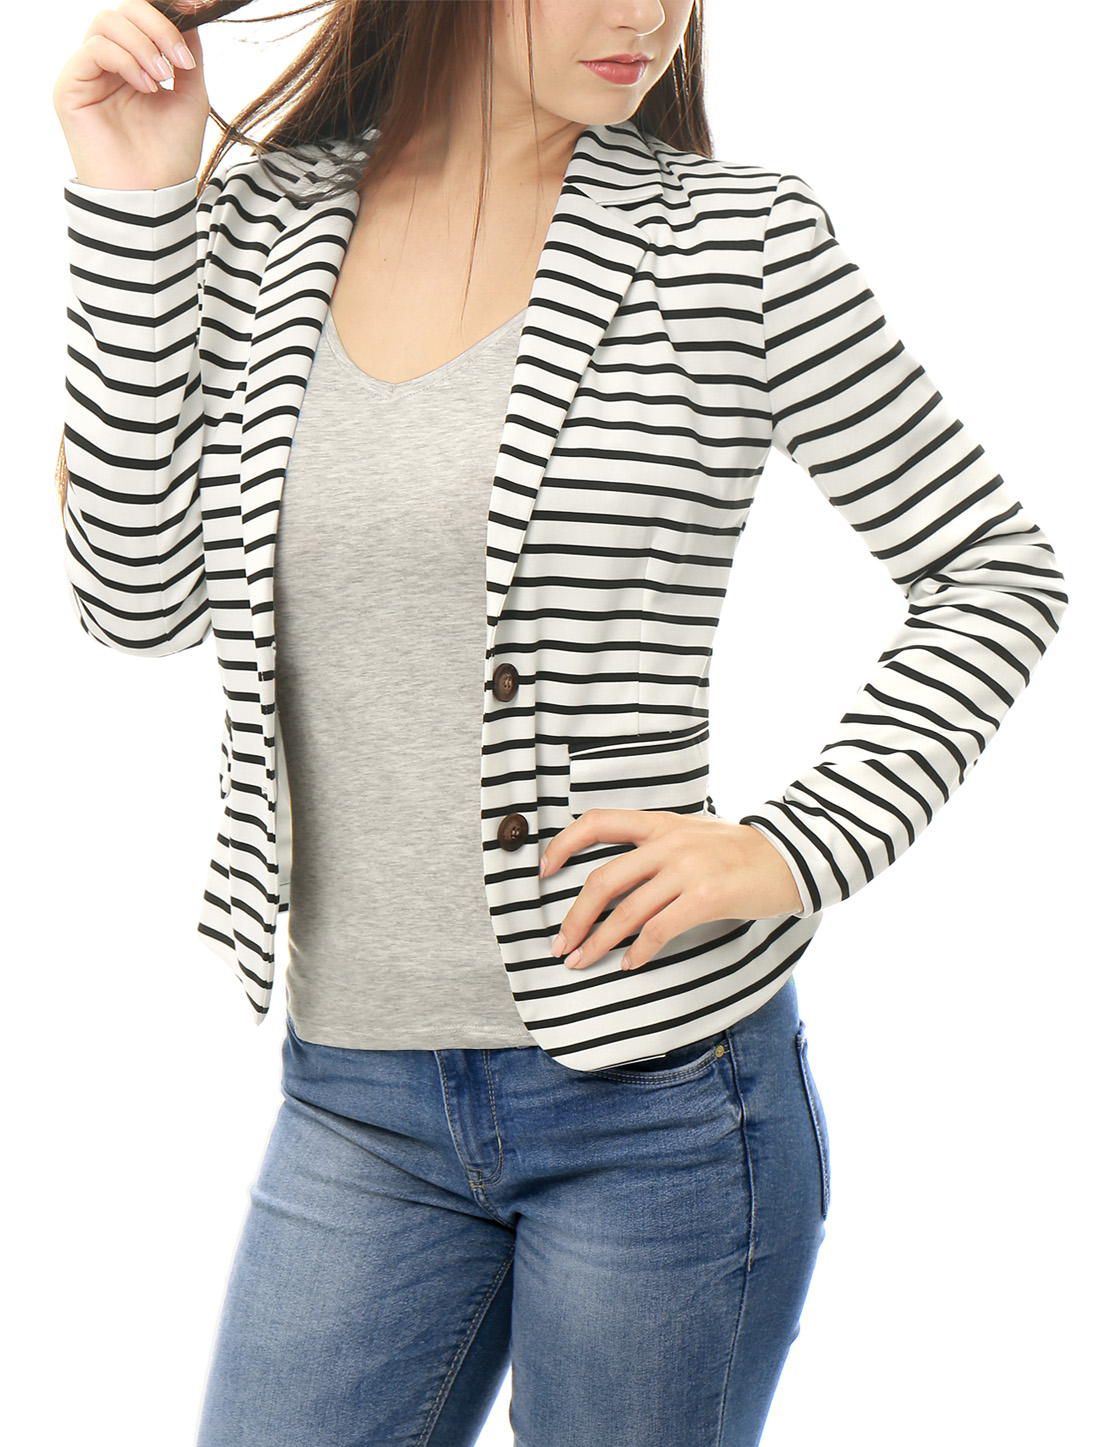 Unique Bargains Women's Notched Lapel Button Closure Striped Blazer White L